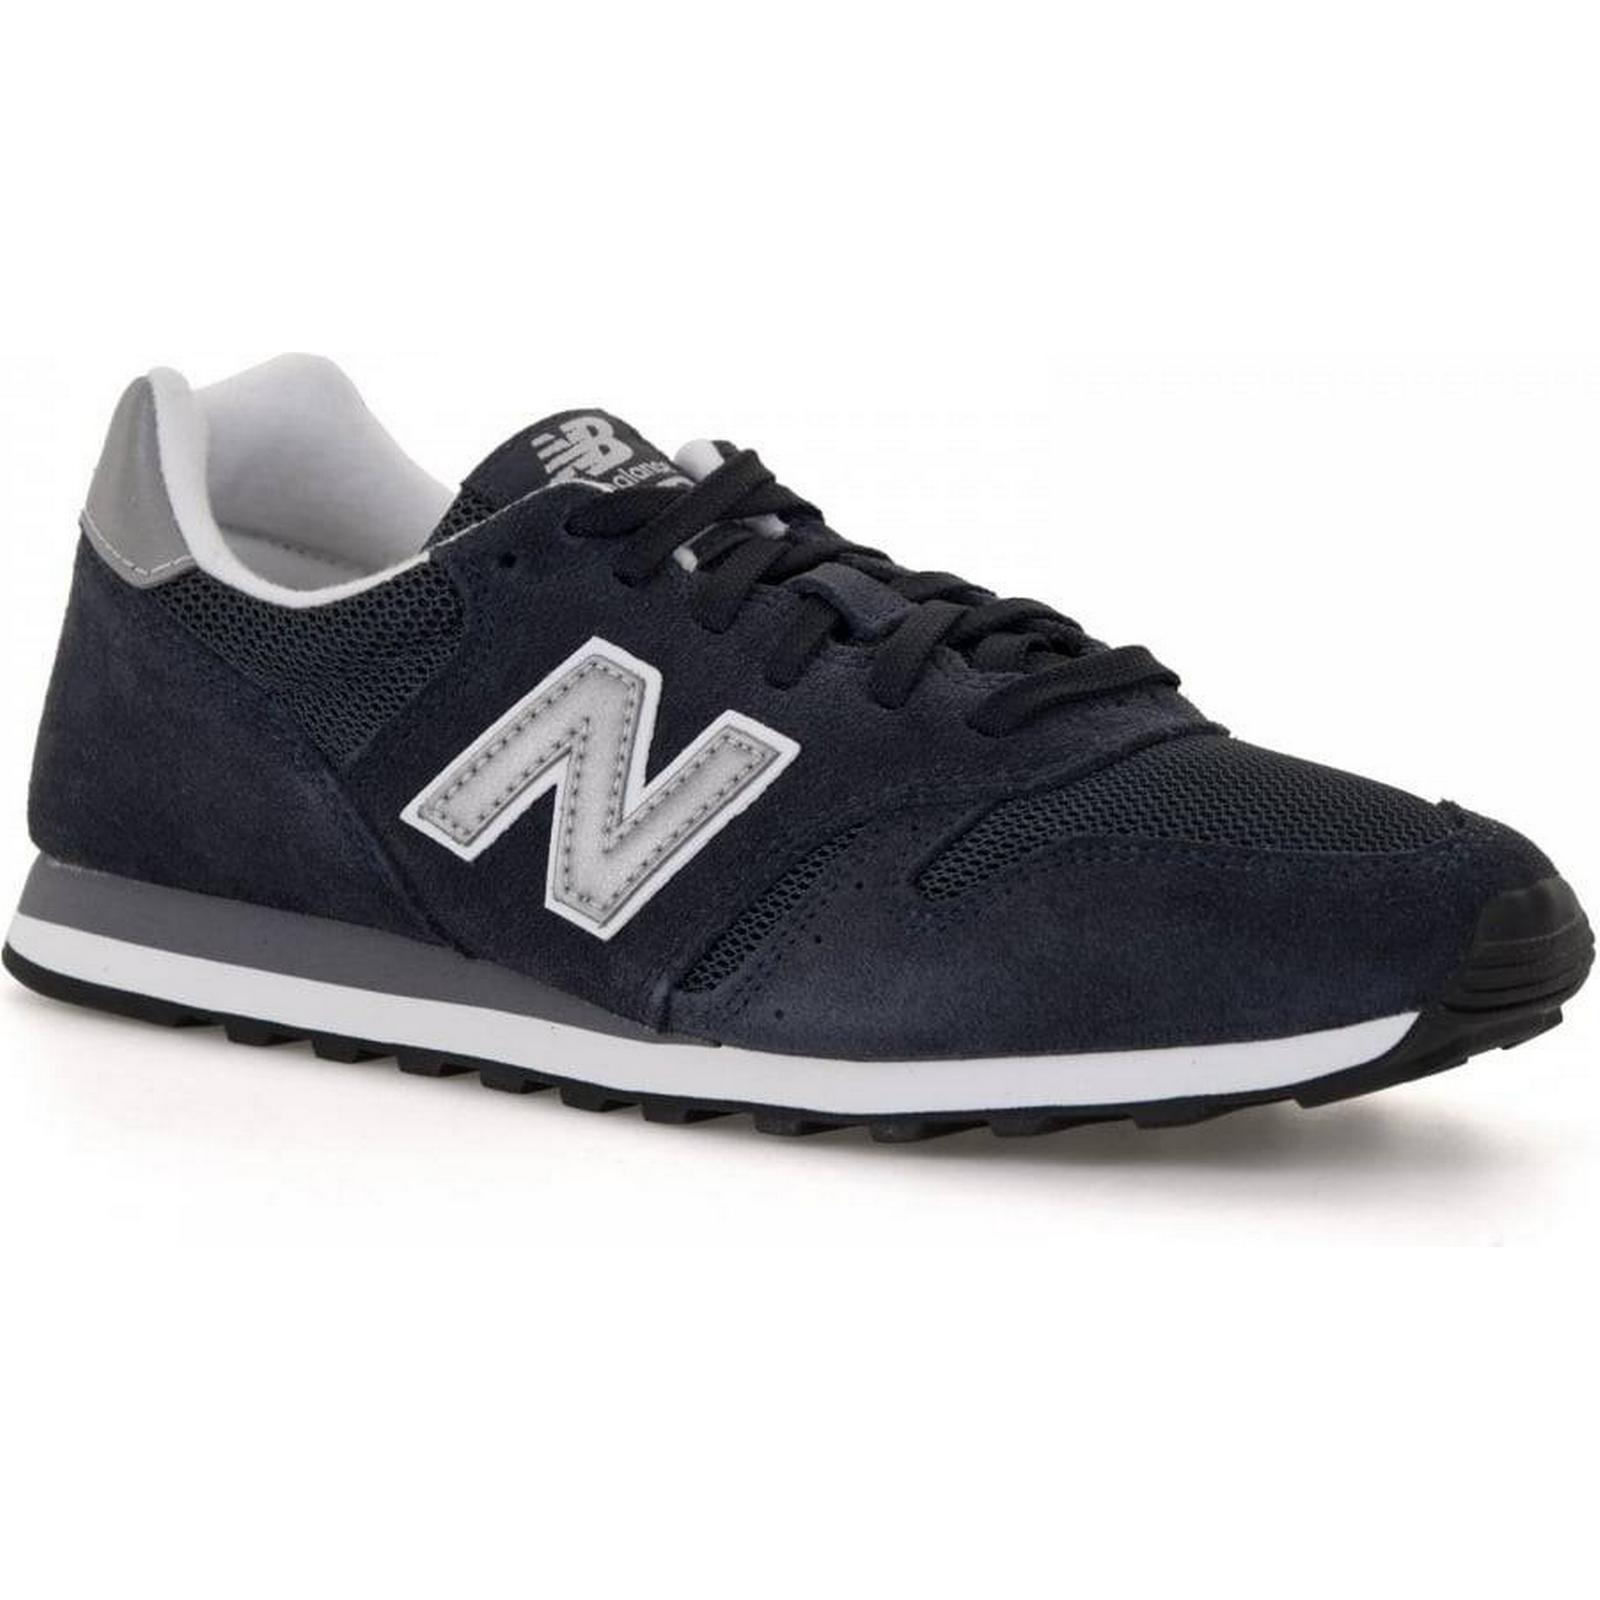 New Balance Mens 373 Colour: Trainers (Navy) Size: 10, Colour: 373 NAVY c036a3